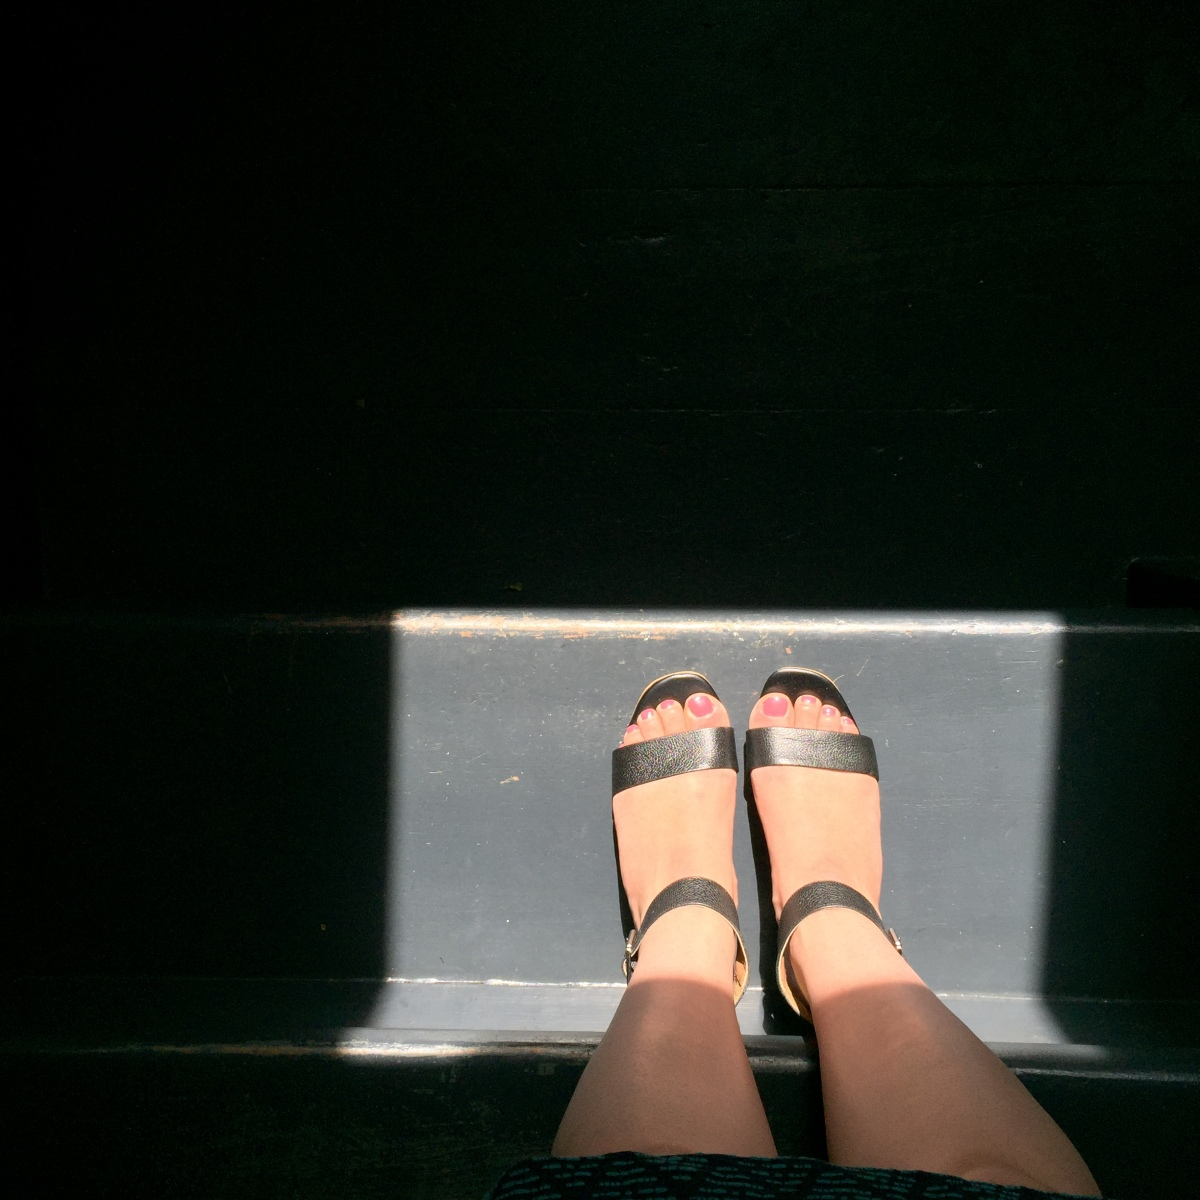 A top-down photograph of Emma's feet in black leather sandals standing on a step with sunlight shining on Emma's feet in the bottom right corner